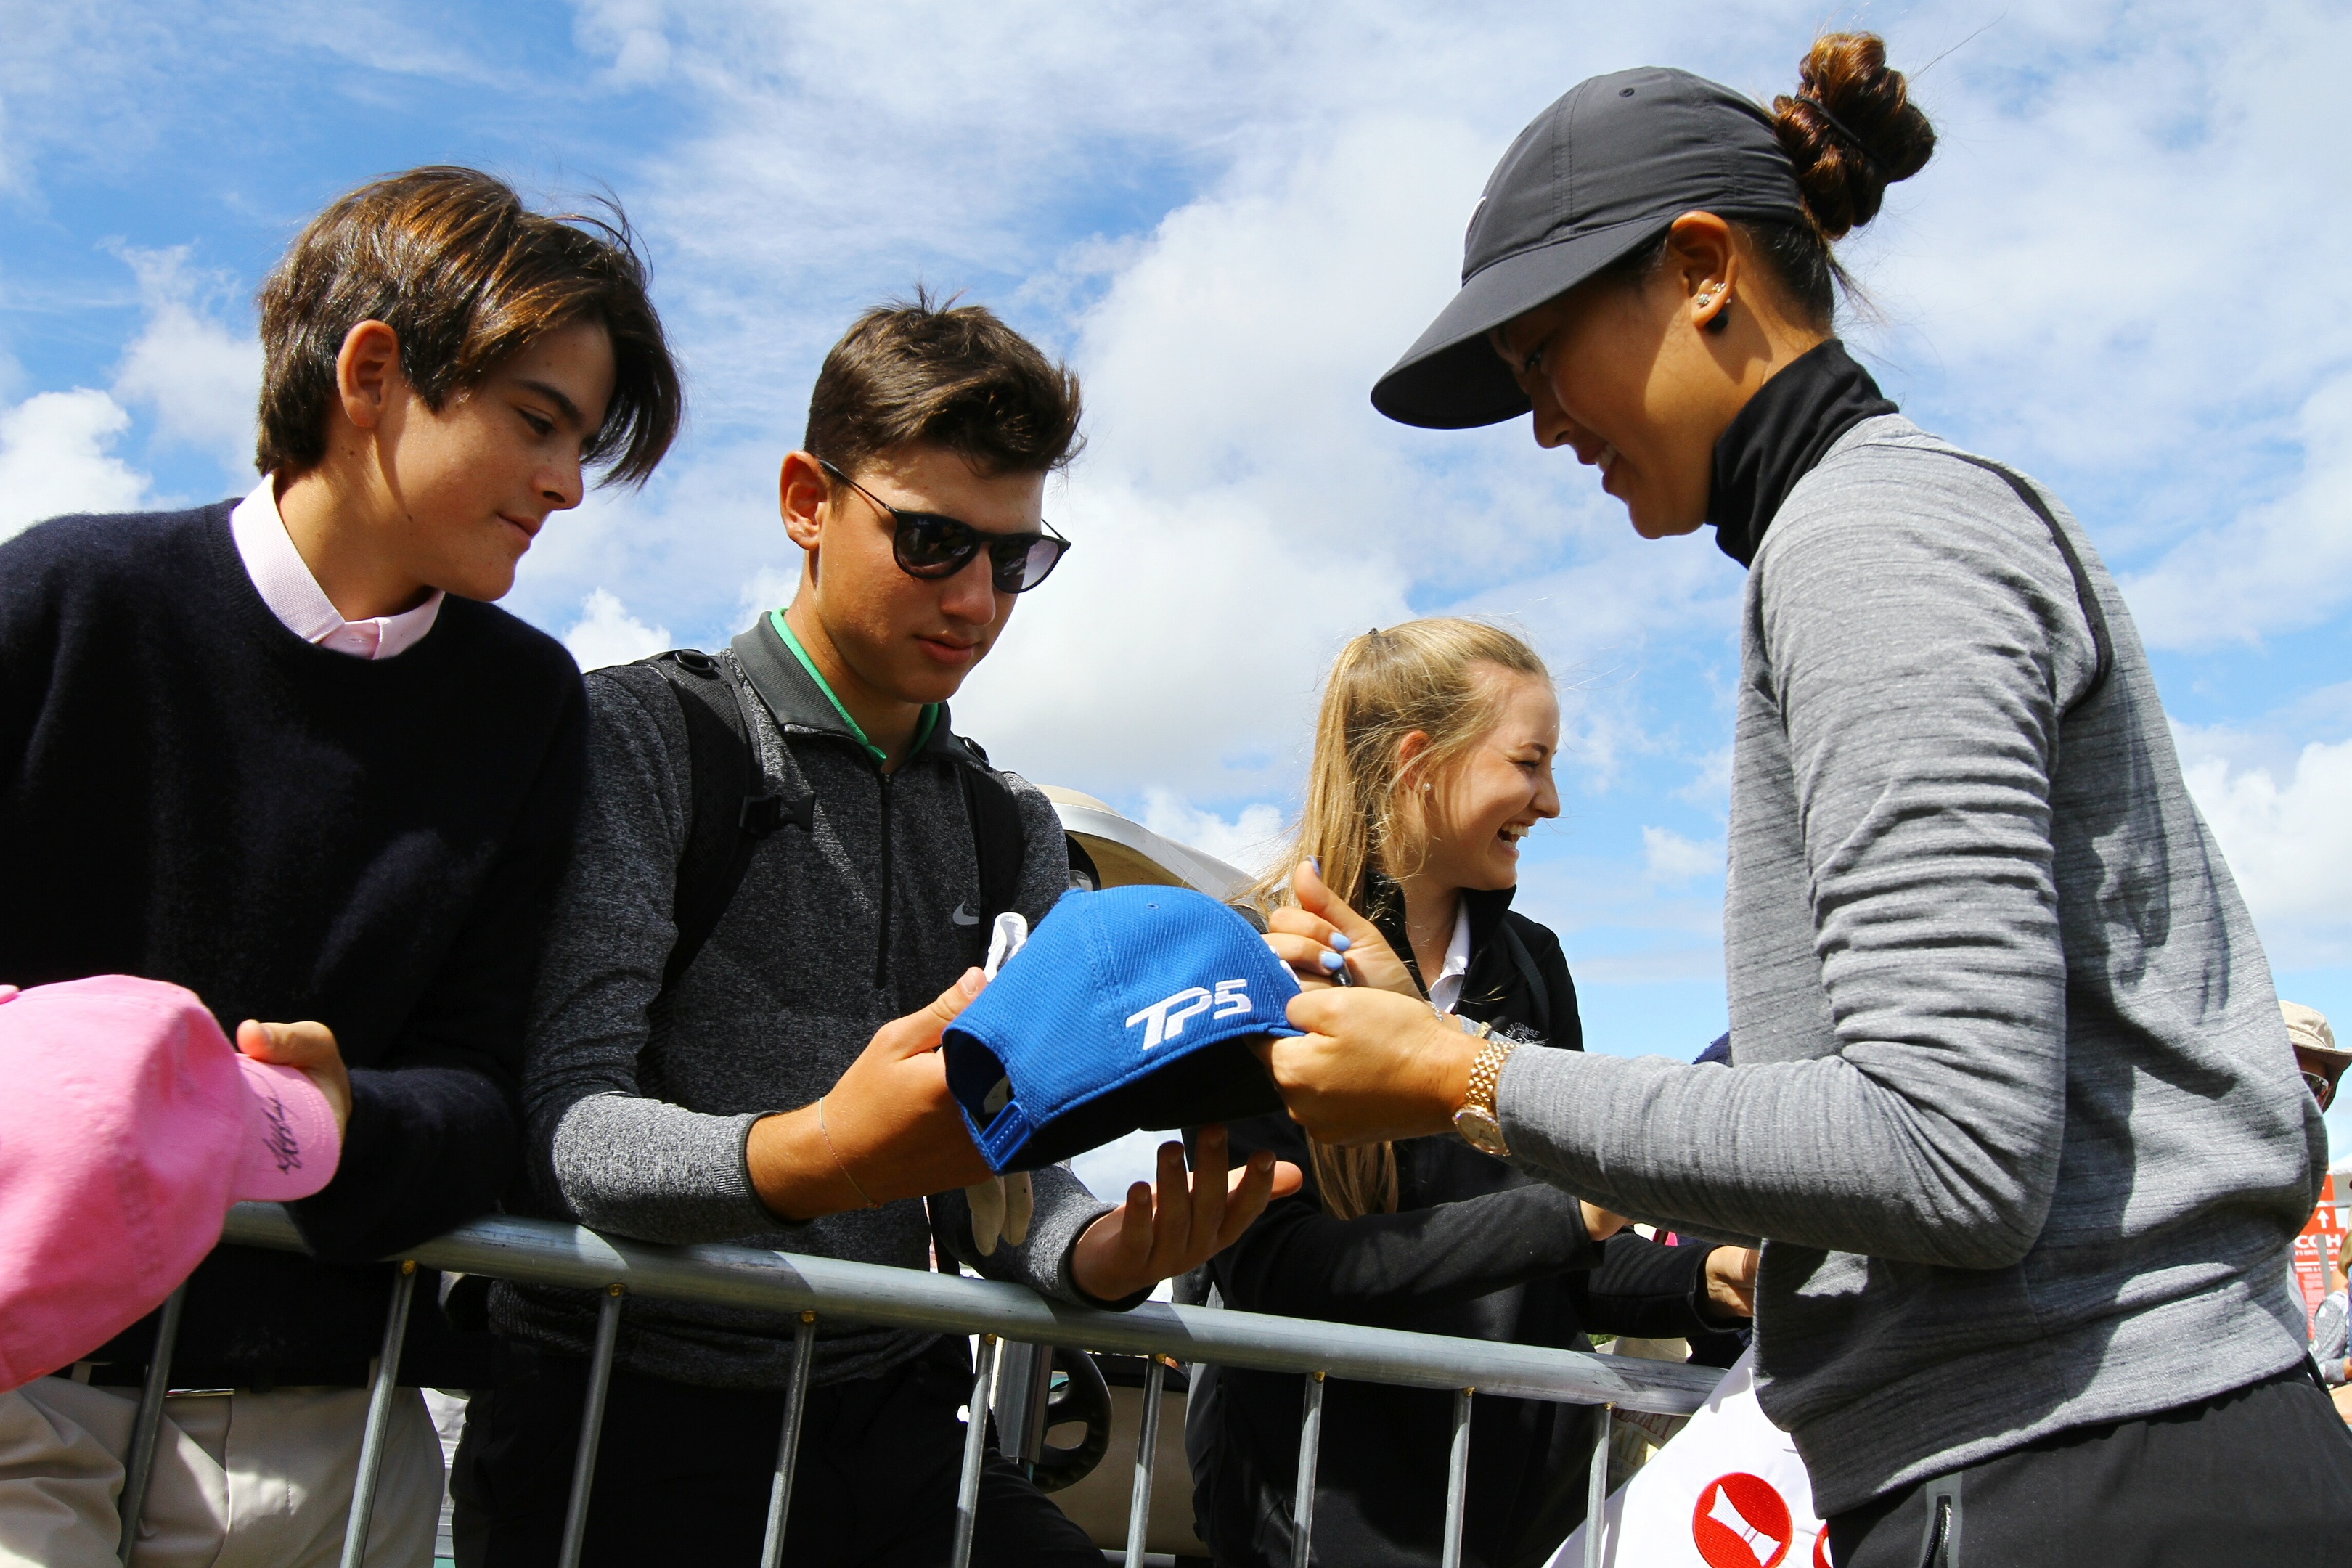 Michelle Wie signed autographs for fans after breaking the women's course record